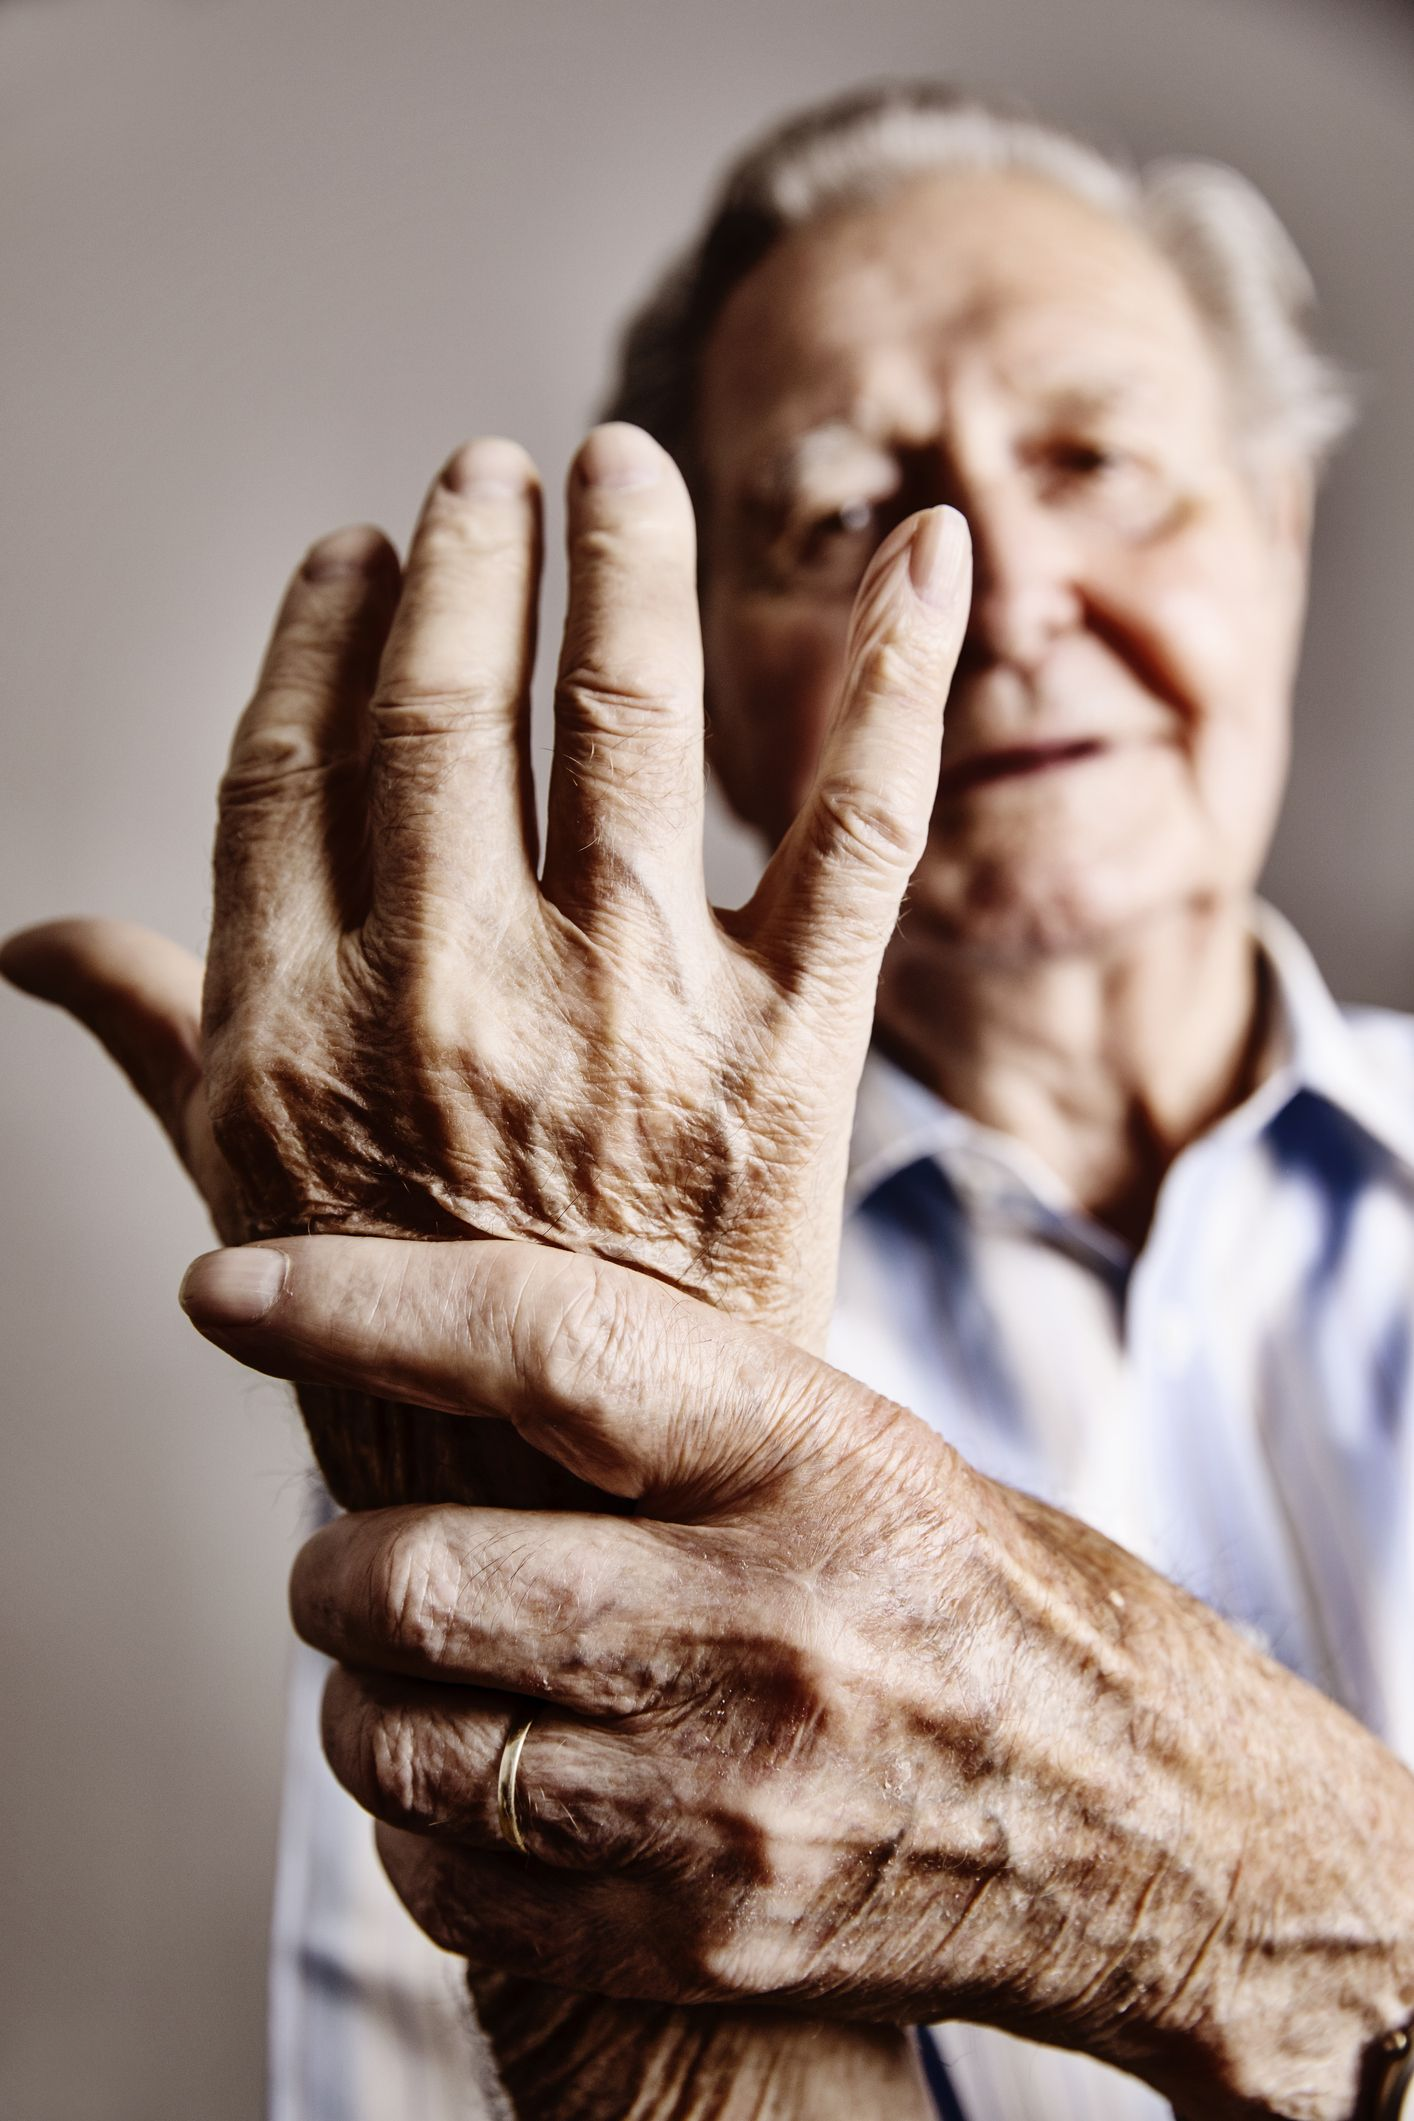 Osteoarthritis symptoms, treatment, causes and getting help